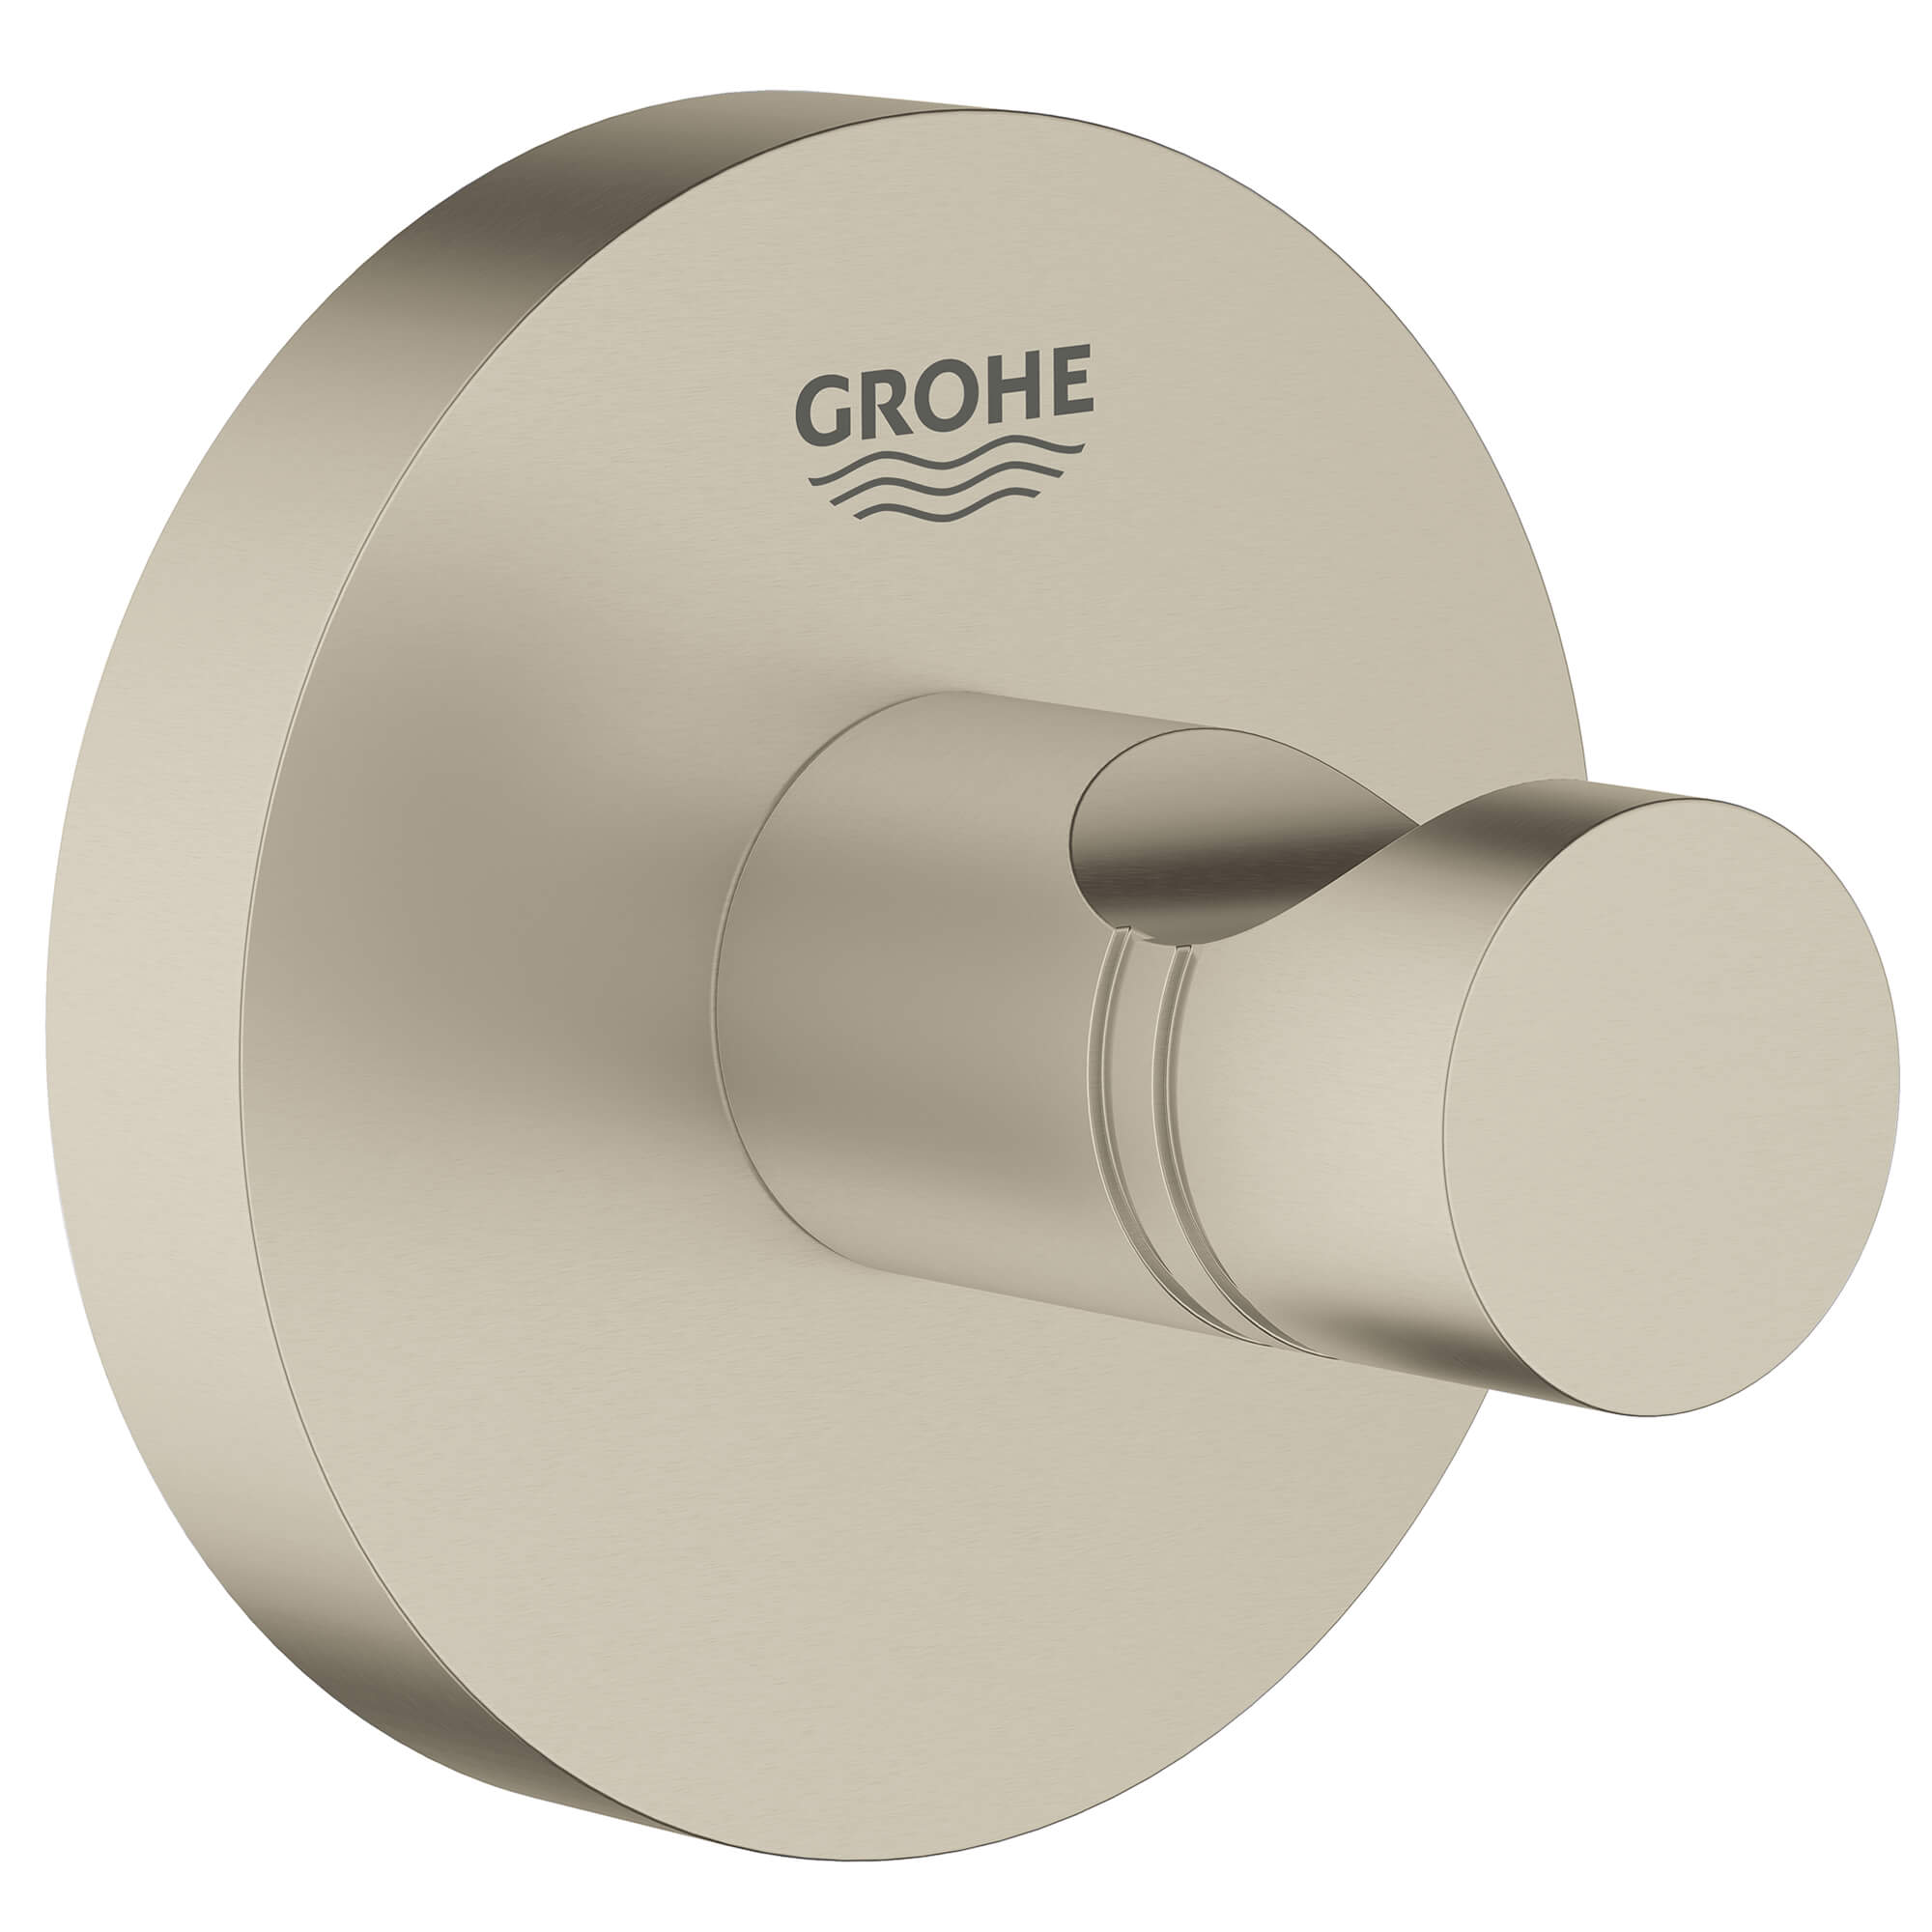 Essentials Crochet GROHE BRUSHED NICKEL